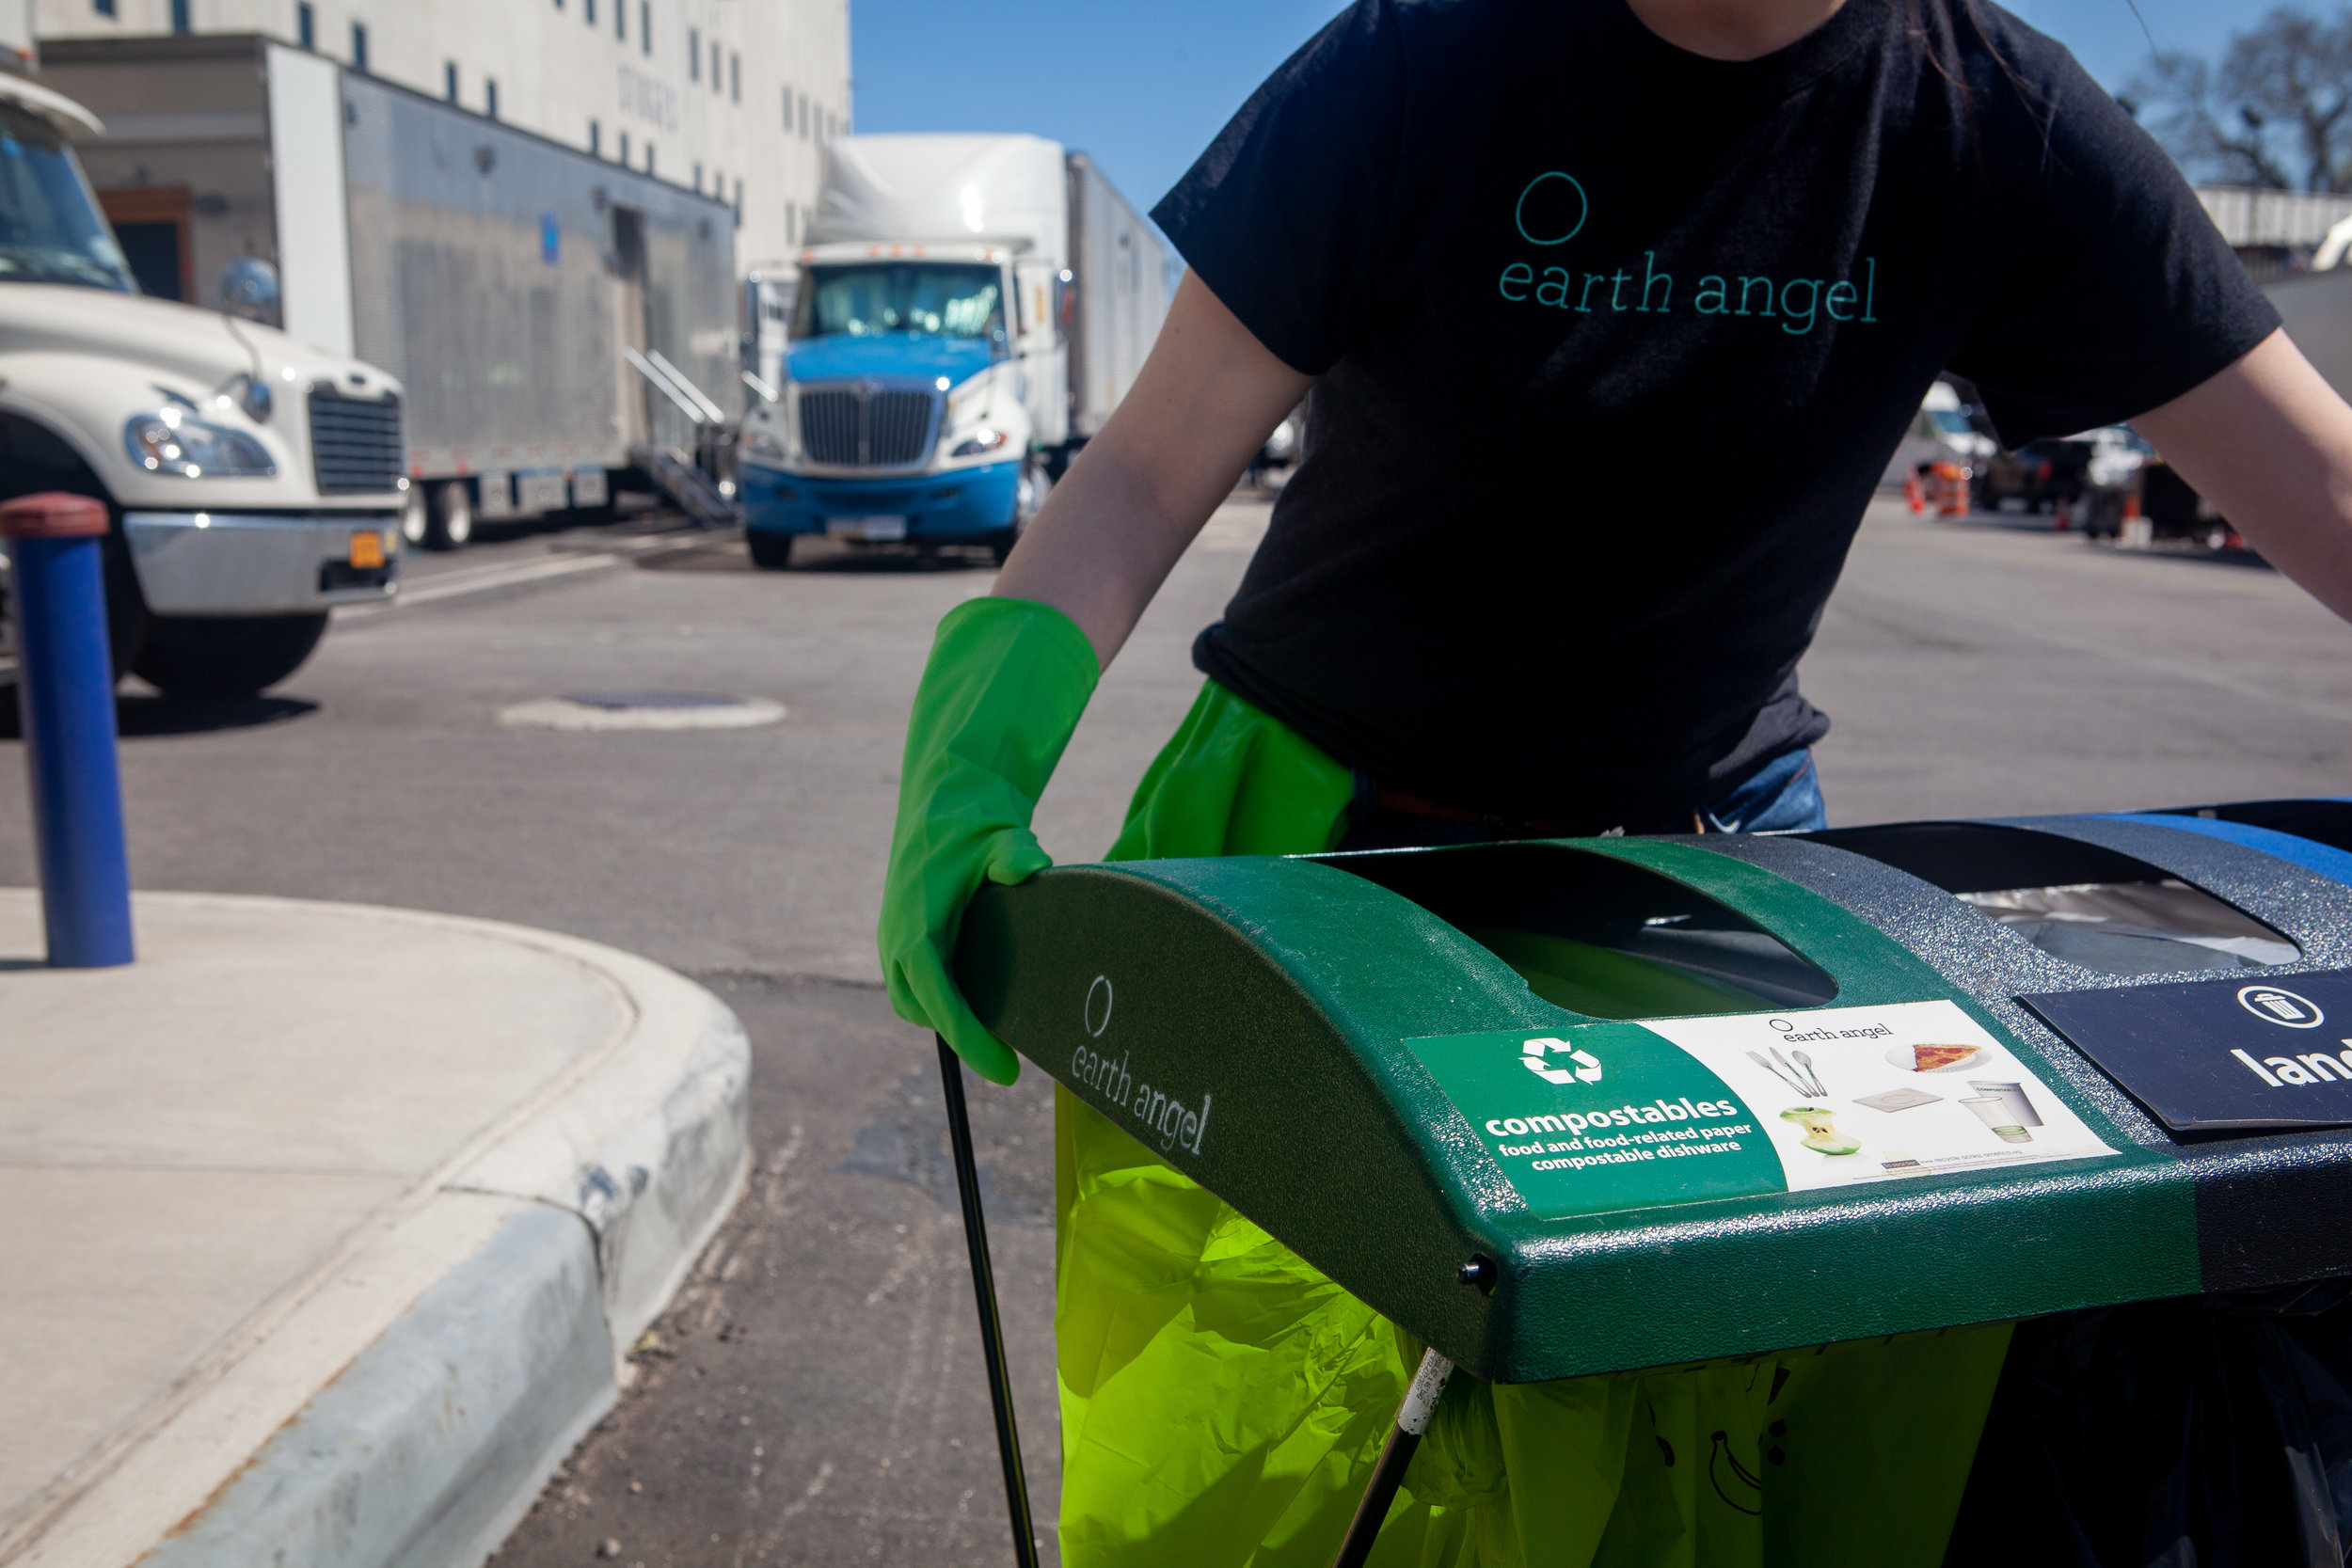 Zero Waste Kits - We understand that productions require specialized equipment that is durable, mobile and versatile. Rent or purchase EQUIPMENT directly from Earth Angel to outfit every facility and location type with what you need to run a zero waste program.